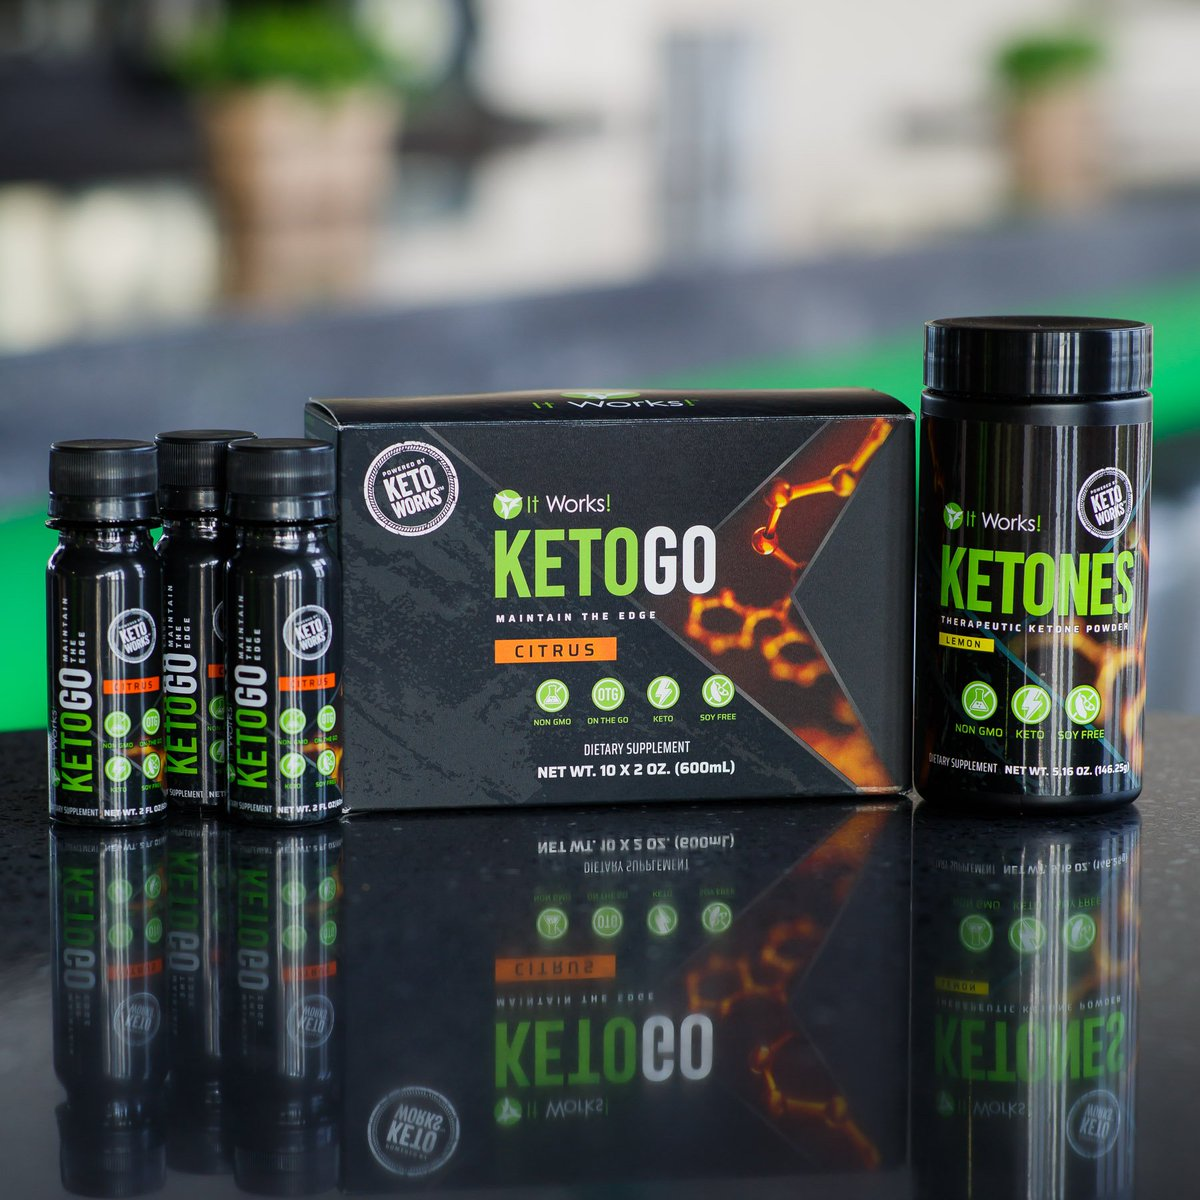 It Works On Twitter The Wait Is Over Keto Go And Ketones Are NOW AVAILABLE To Purchase Whos Ready Maintain Edge US Only